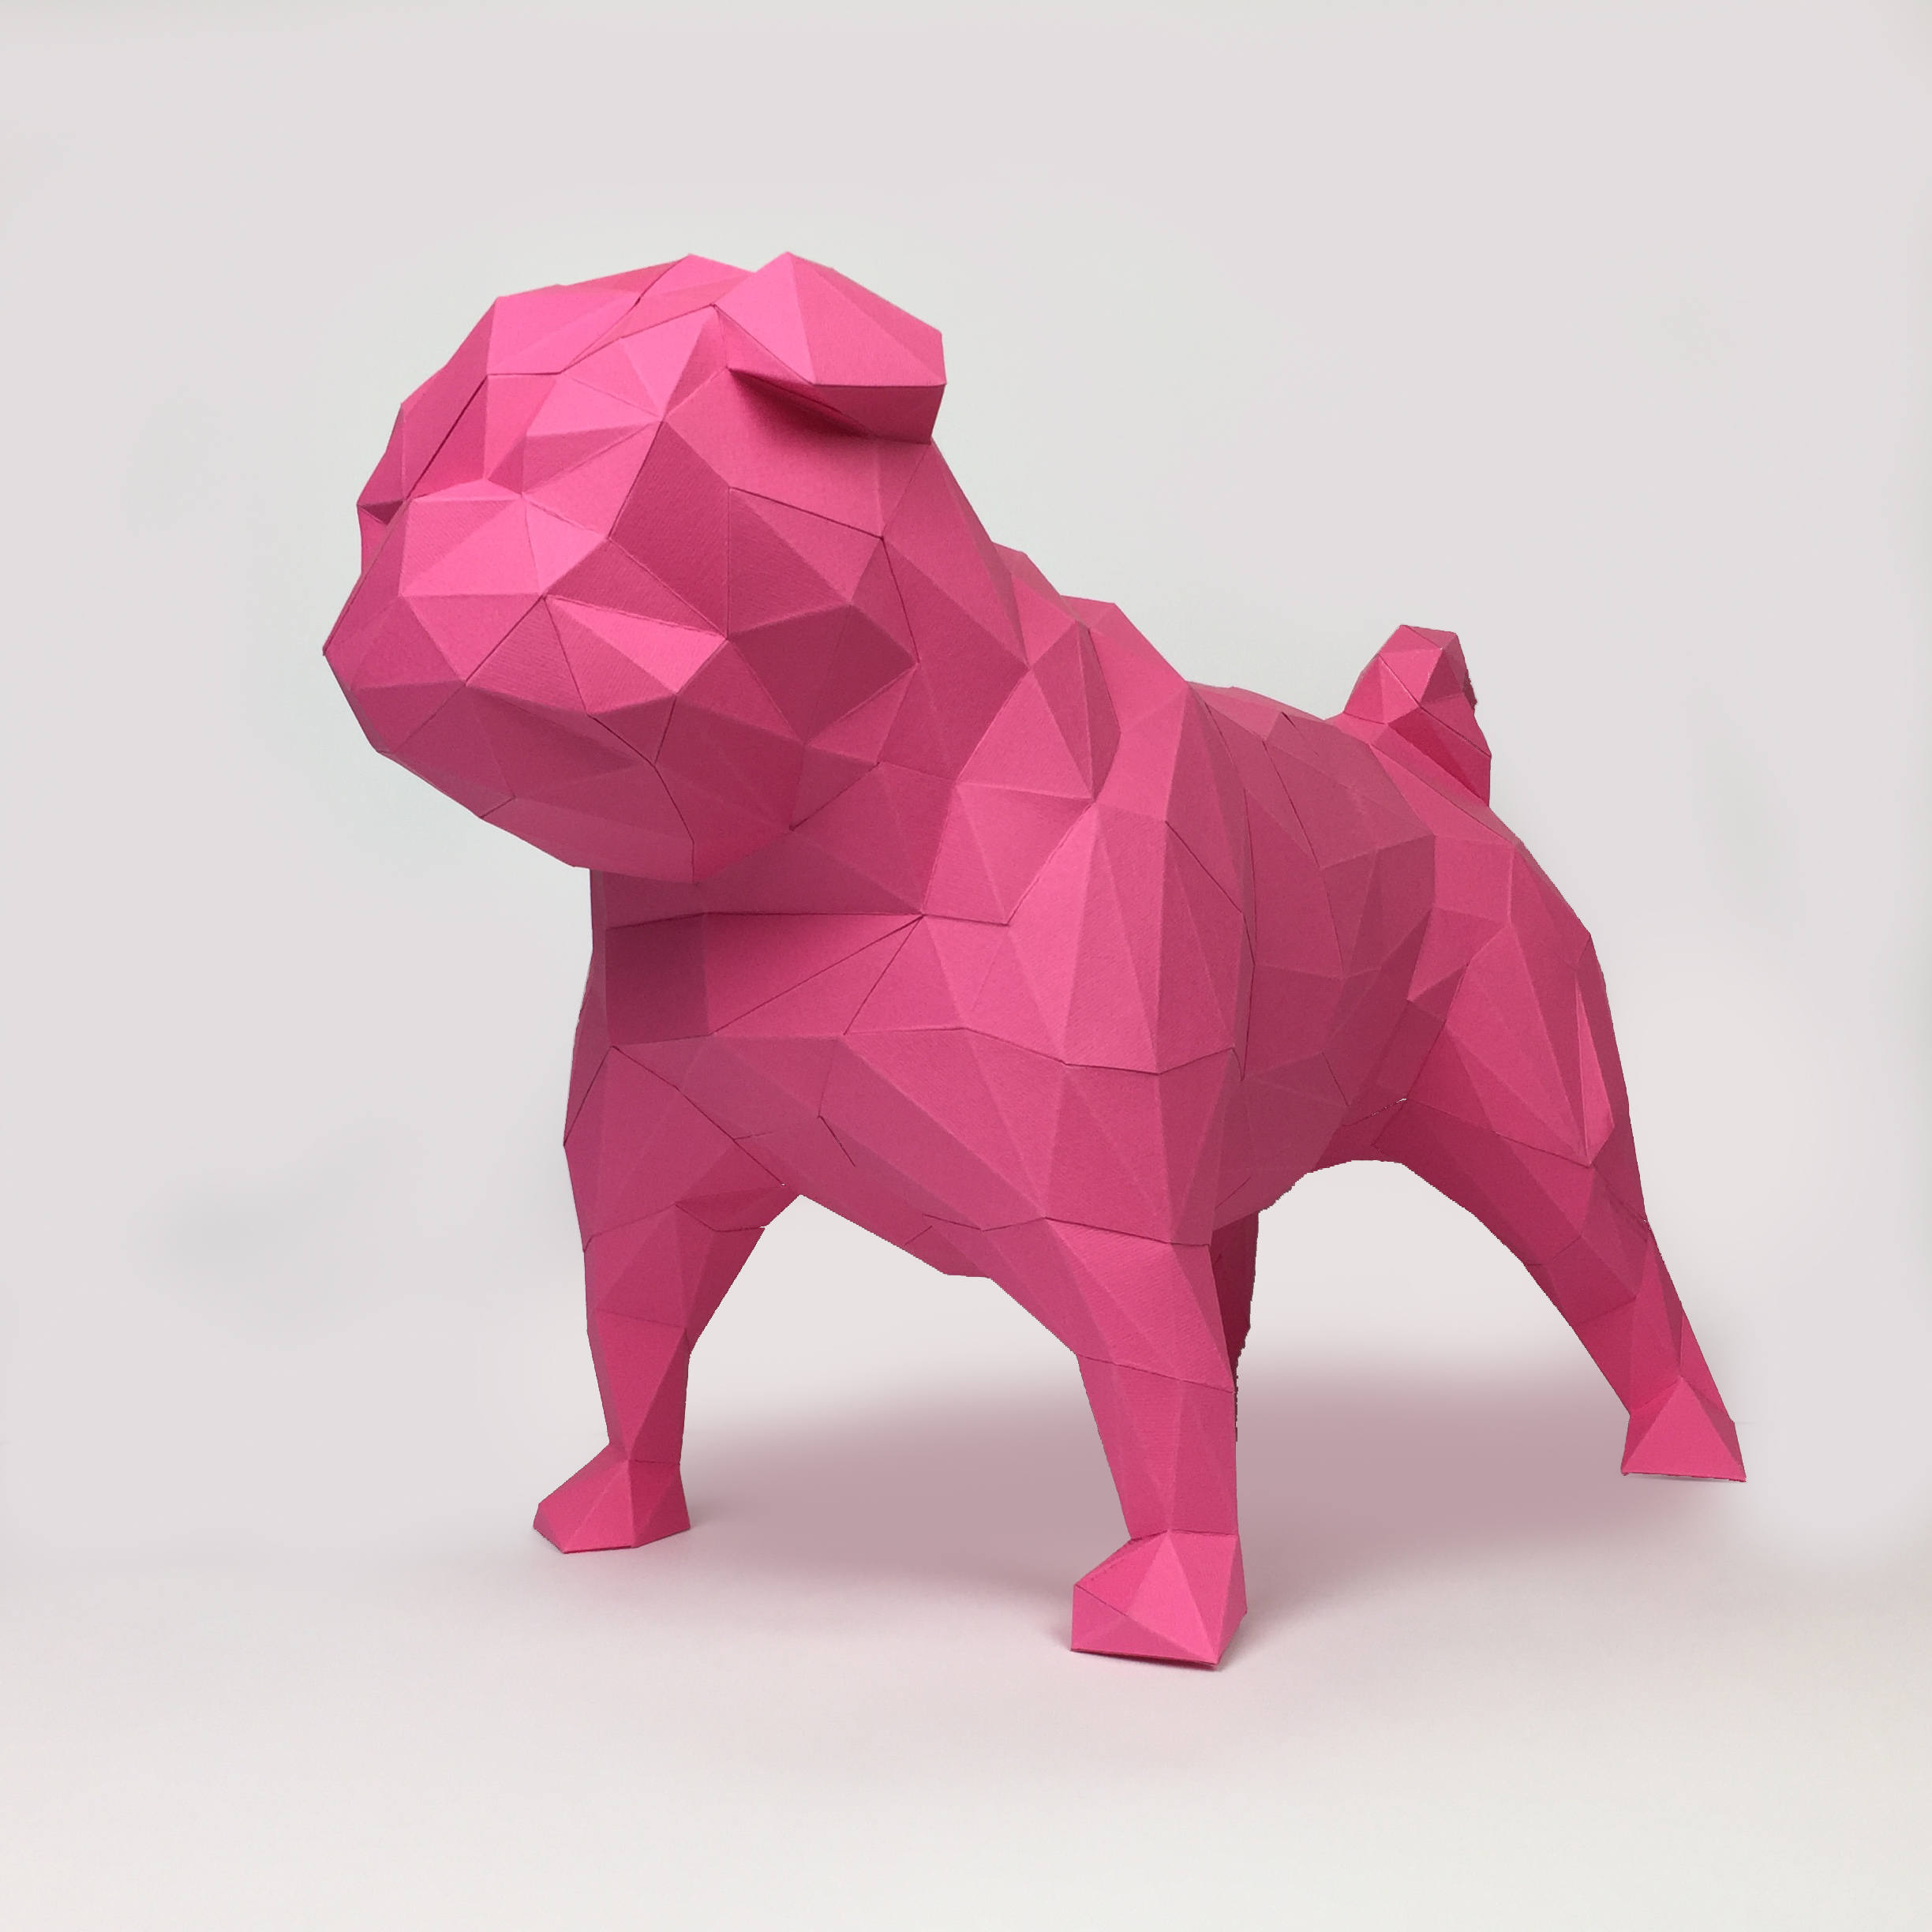 Pug Dog Papercraft, Paper Pug, Dog Statue, Puppy Pug, Paper Animals, Papertoy, Home Decor, Pug Dog, 3D papercraft model, lowpoly DIY, hobby example image 1